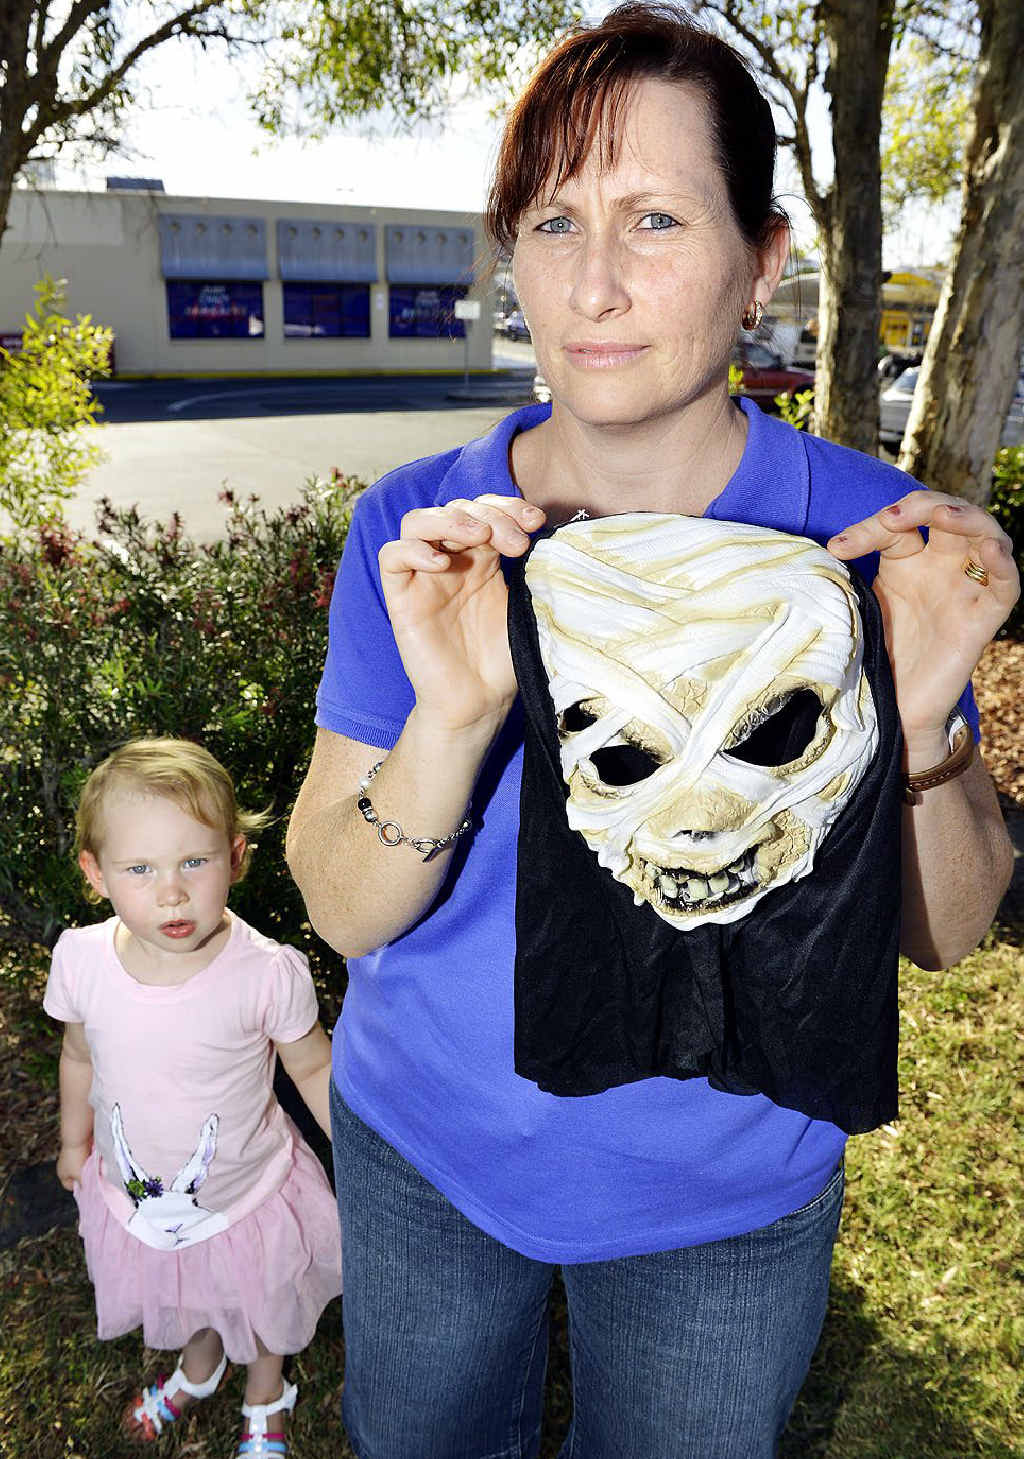 SCARY: Lauren Cochrane holds up a Halloween mask purchased from Just Crazy Bargains in Booval. Mrs Cochrane says the shop's Halloween display reduced her daughter to tears.